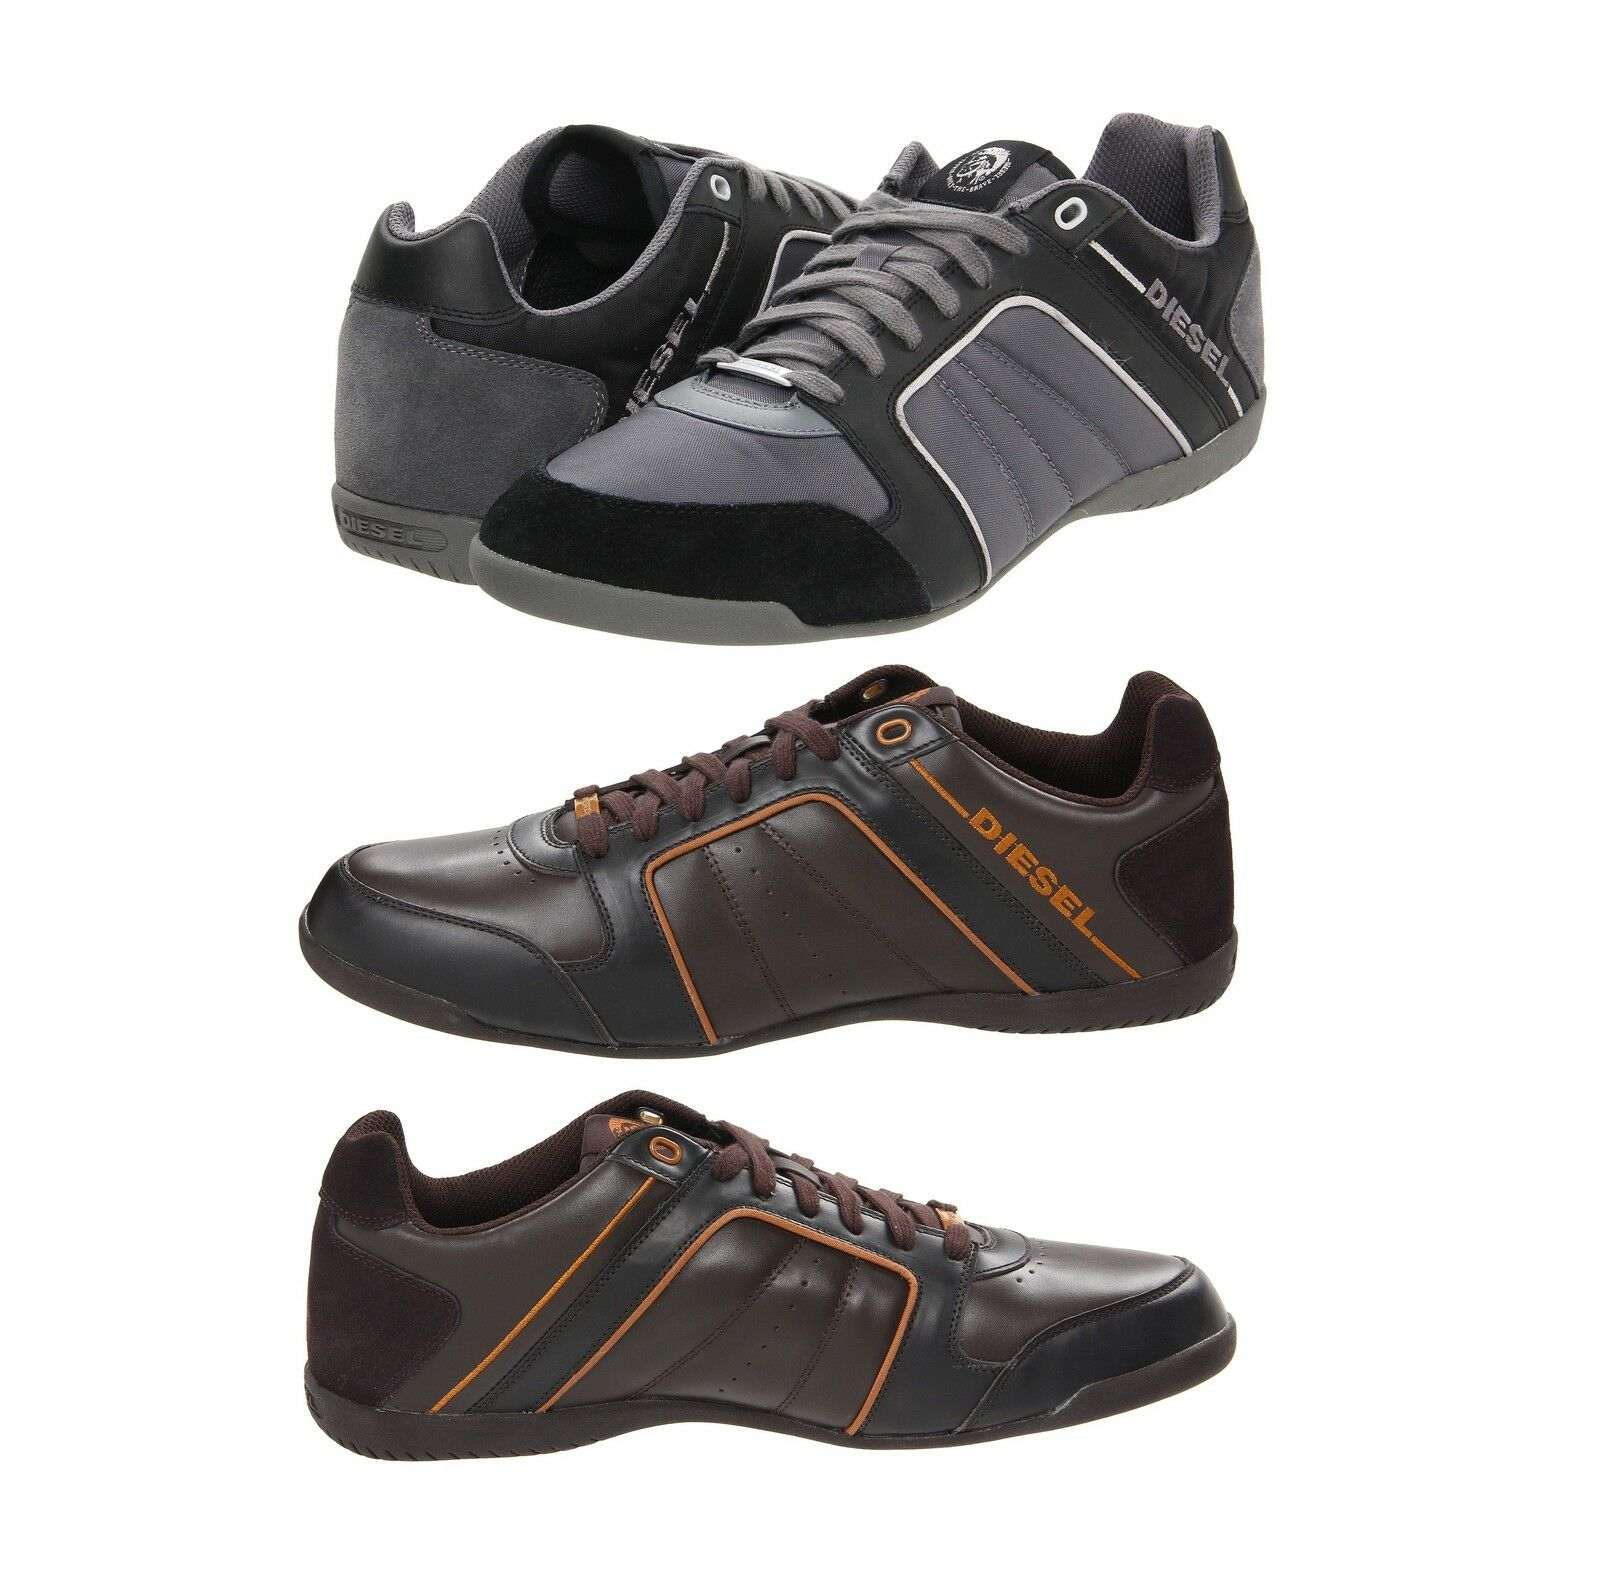 DIESEL Fashion Men's Leather shoes Casual Lace Up Sneakers Sports HURRIKANE-12